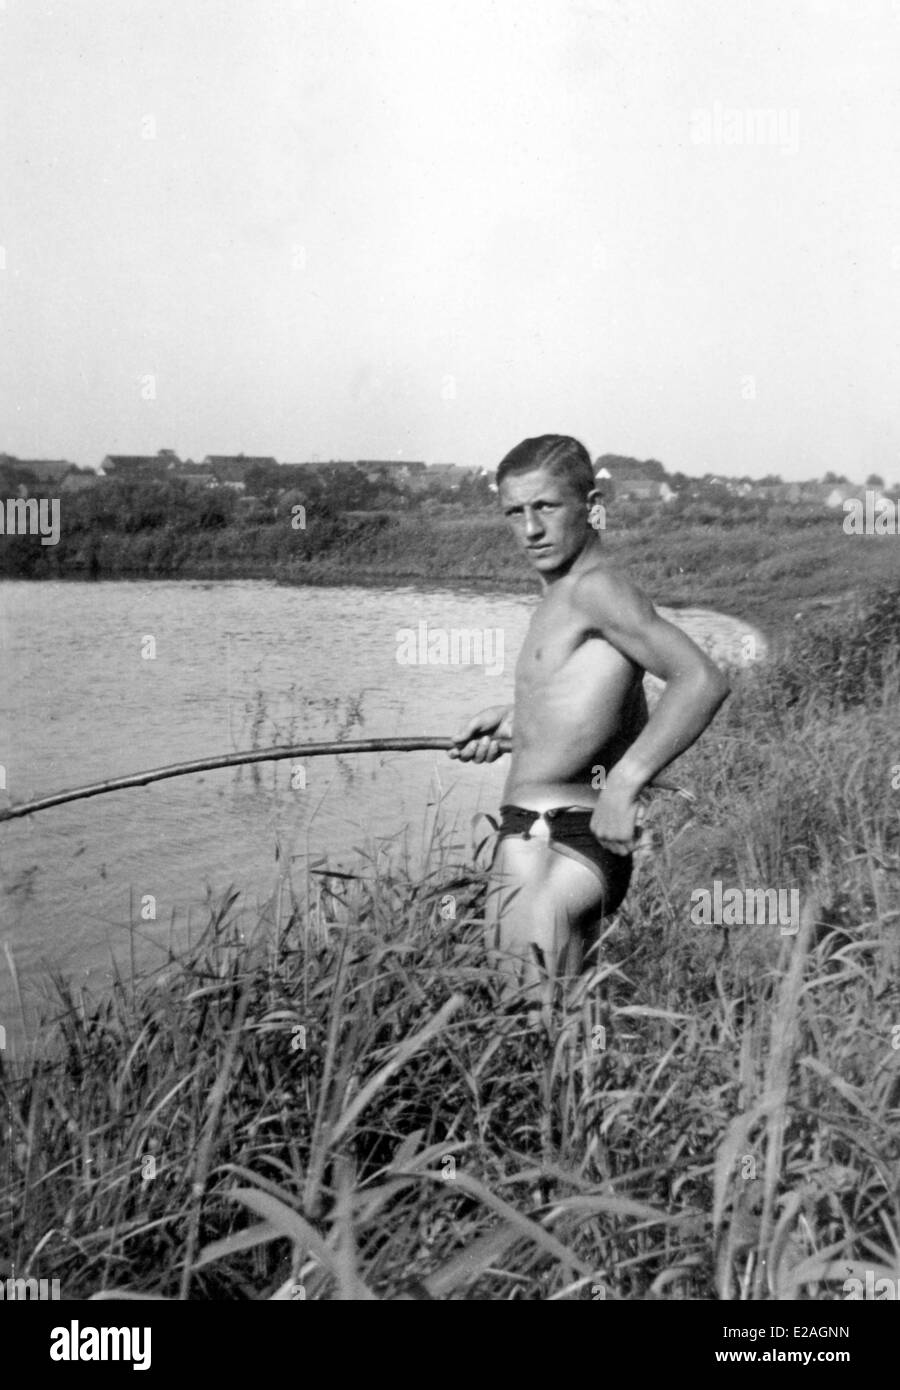 Youth camp at the river Oder in 1937 - young man fishing. - Stock Image